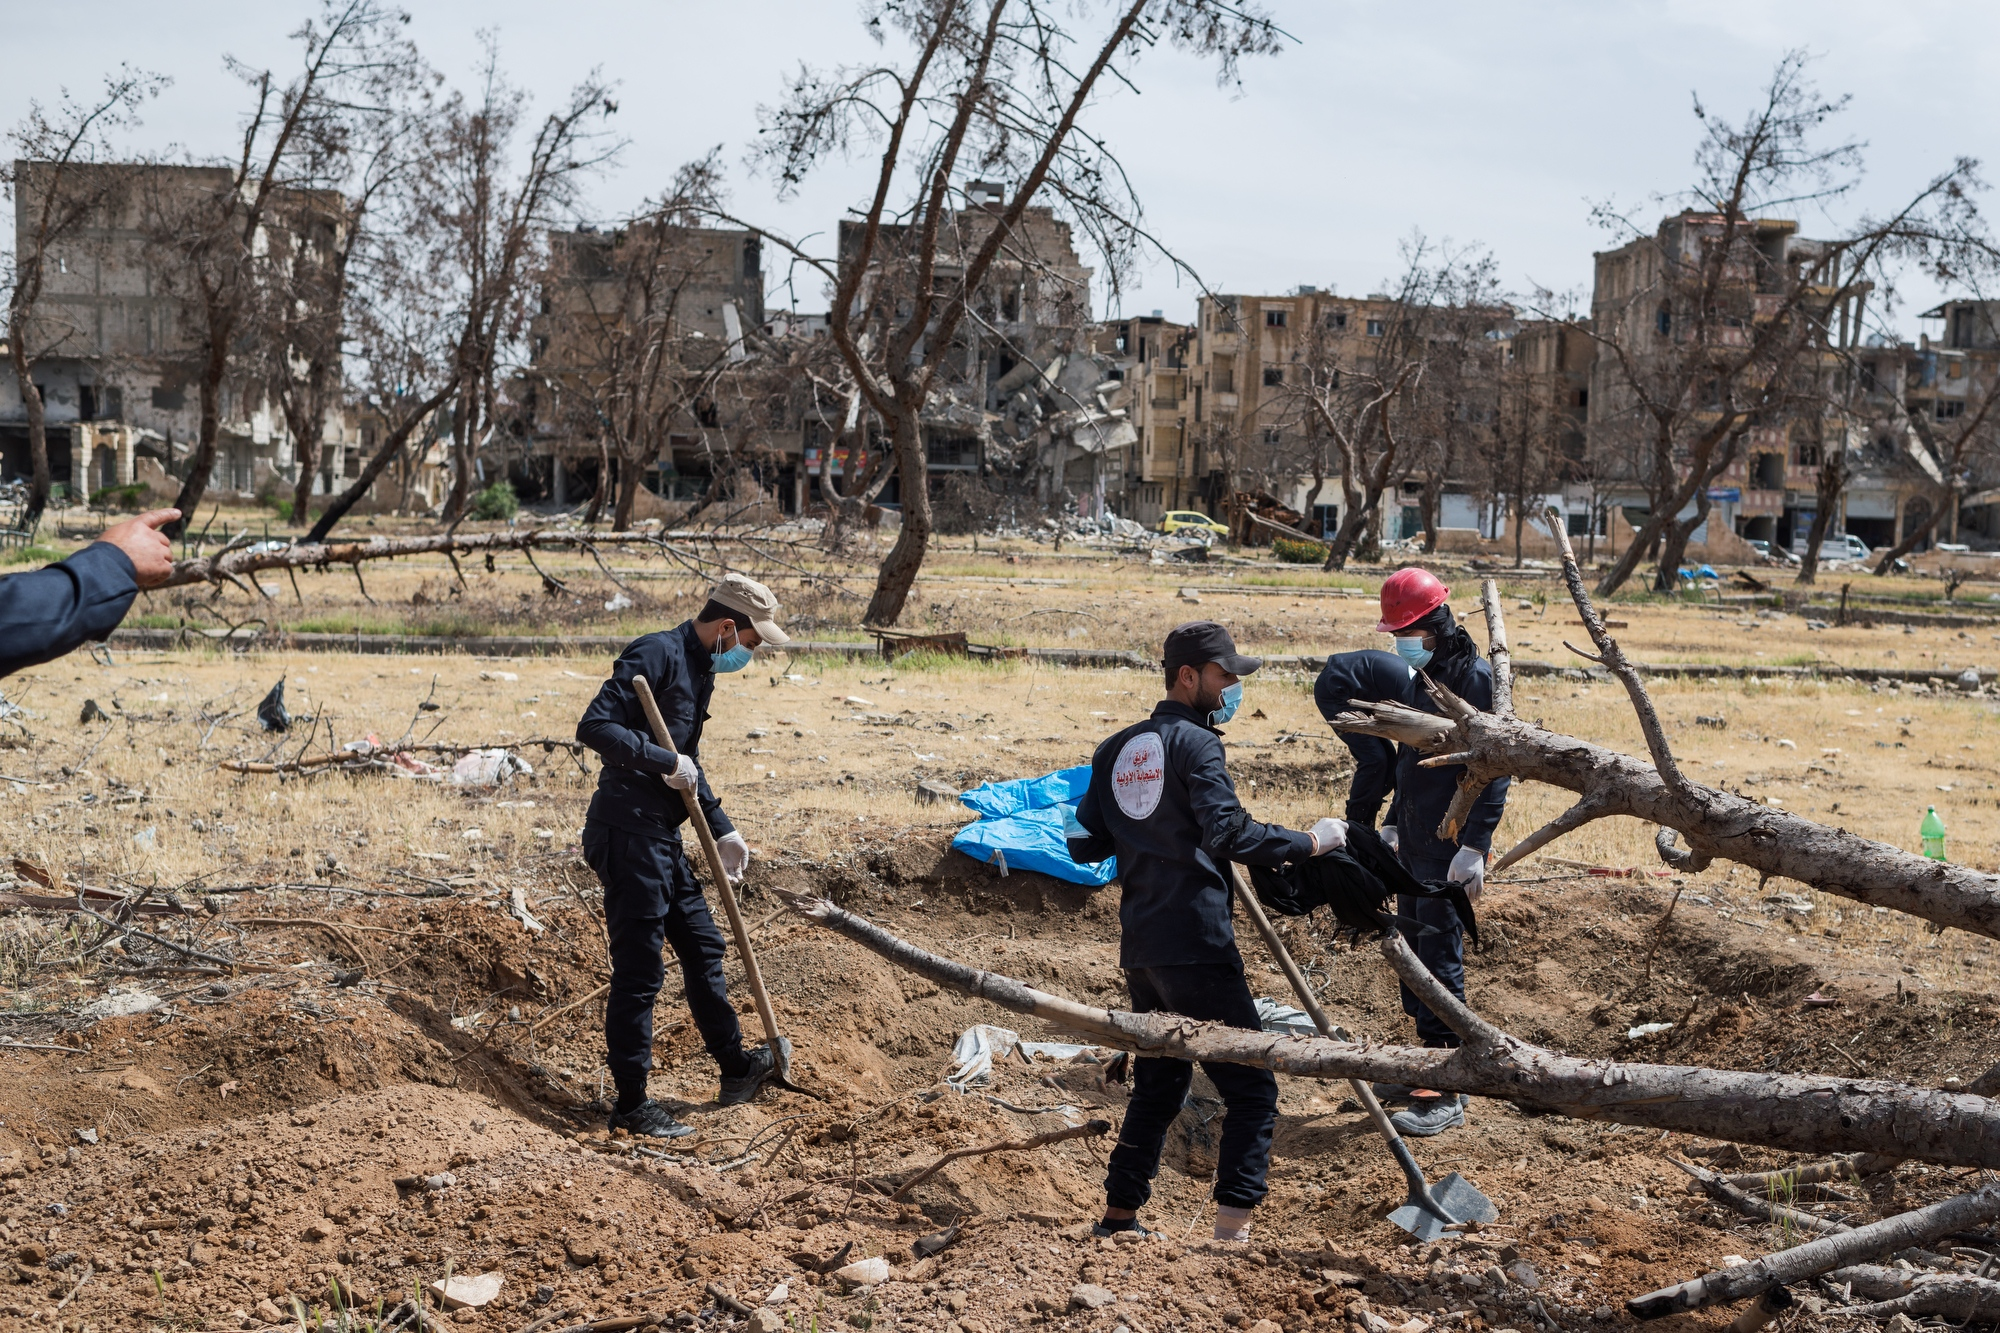 "The first responders team in Raqqa are searching for bodies and human remains in Hediqat Al-beida, ""the white park"" in Raqqa. They say that this particular spot seems to be a mass grave and that they expect to find at least a hundred bodies buried here."